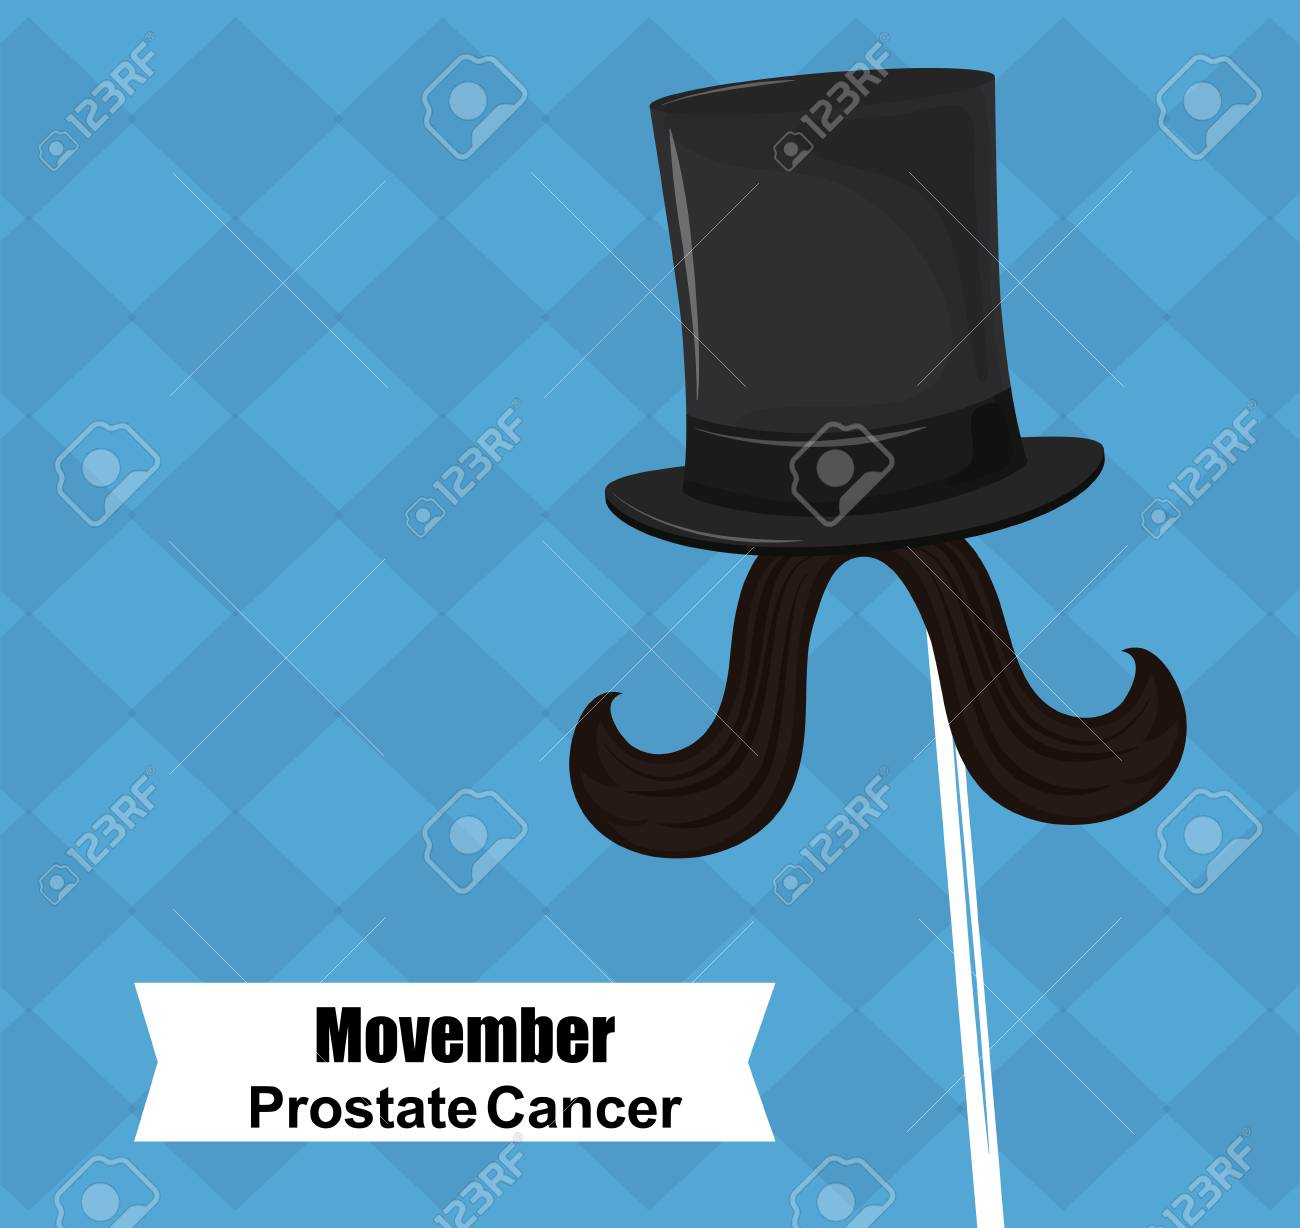 Movember Prostate Cancer Poster Hat And Mustache Booth Prop Vector Illustration Graphic Design Stock